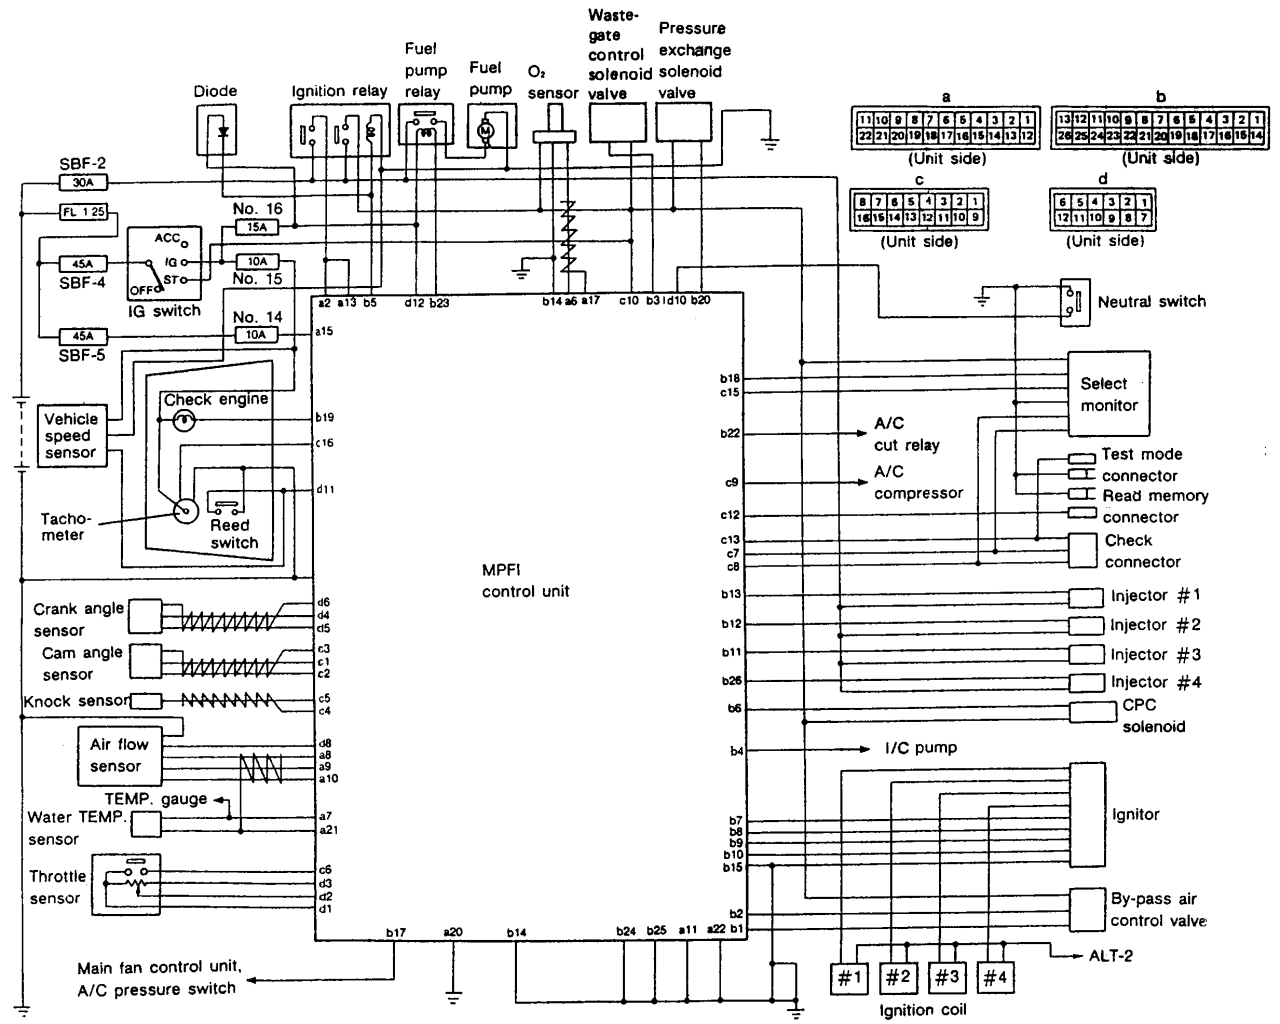 Subaru Impreza Wiring Diagram Wiring Diagram Datasource 2002 Subaru Wrx  Wiring Diagram Pdf